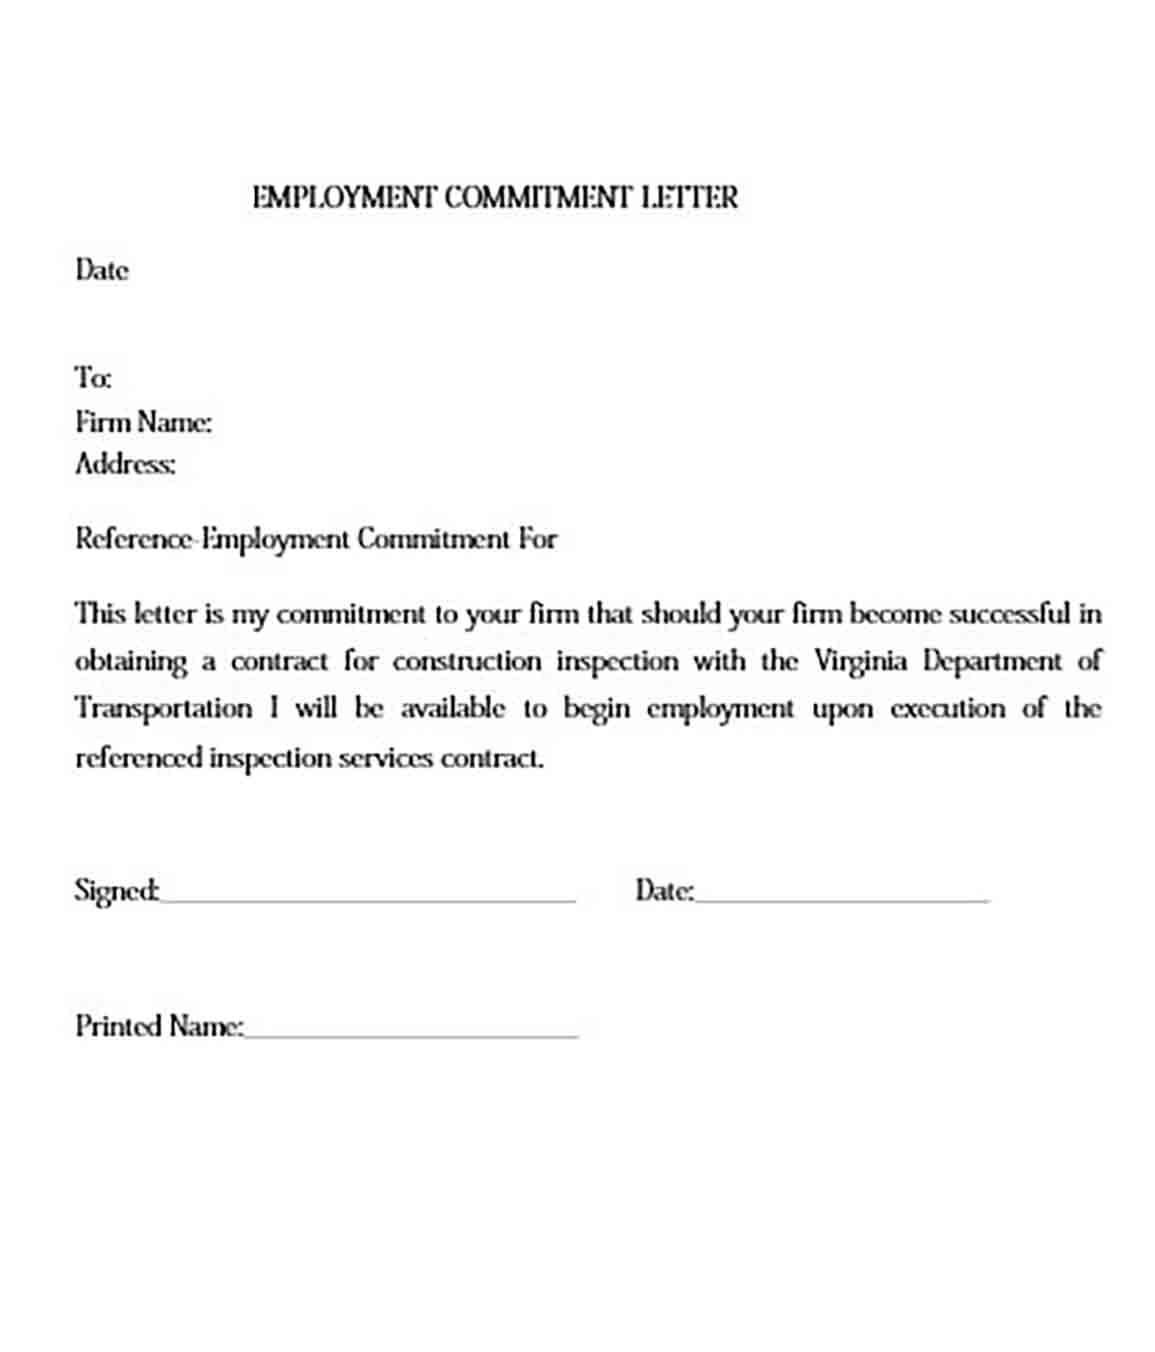 Commitment Letter And How To Make It Impressive To Read